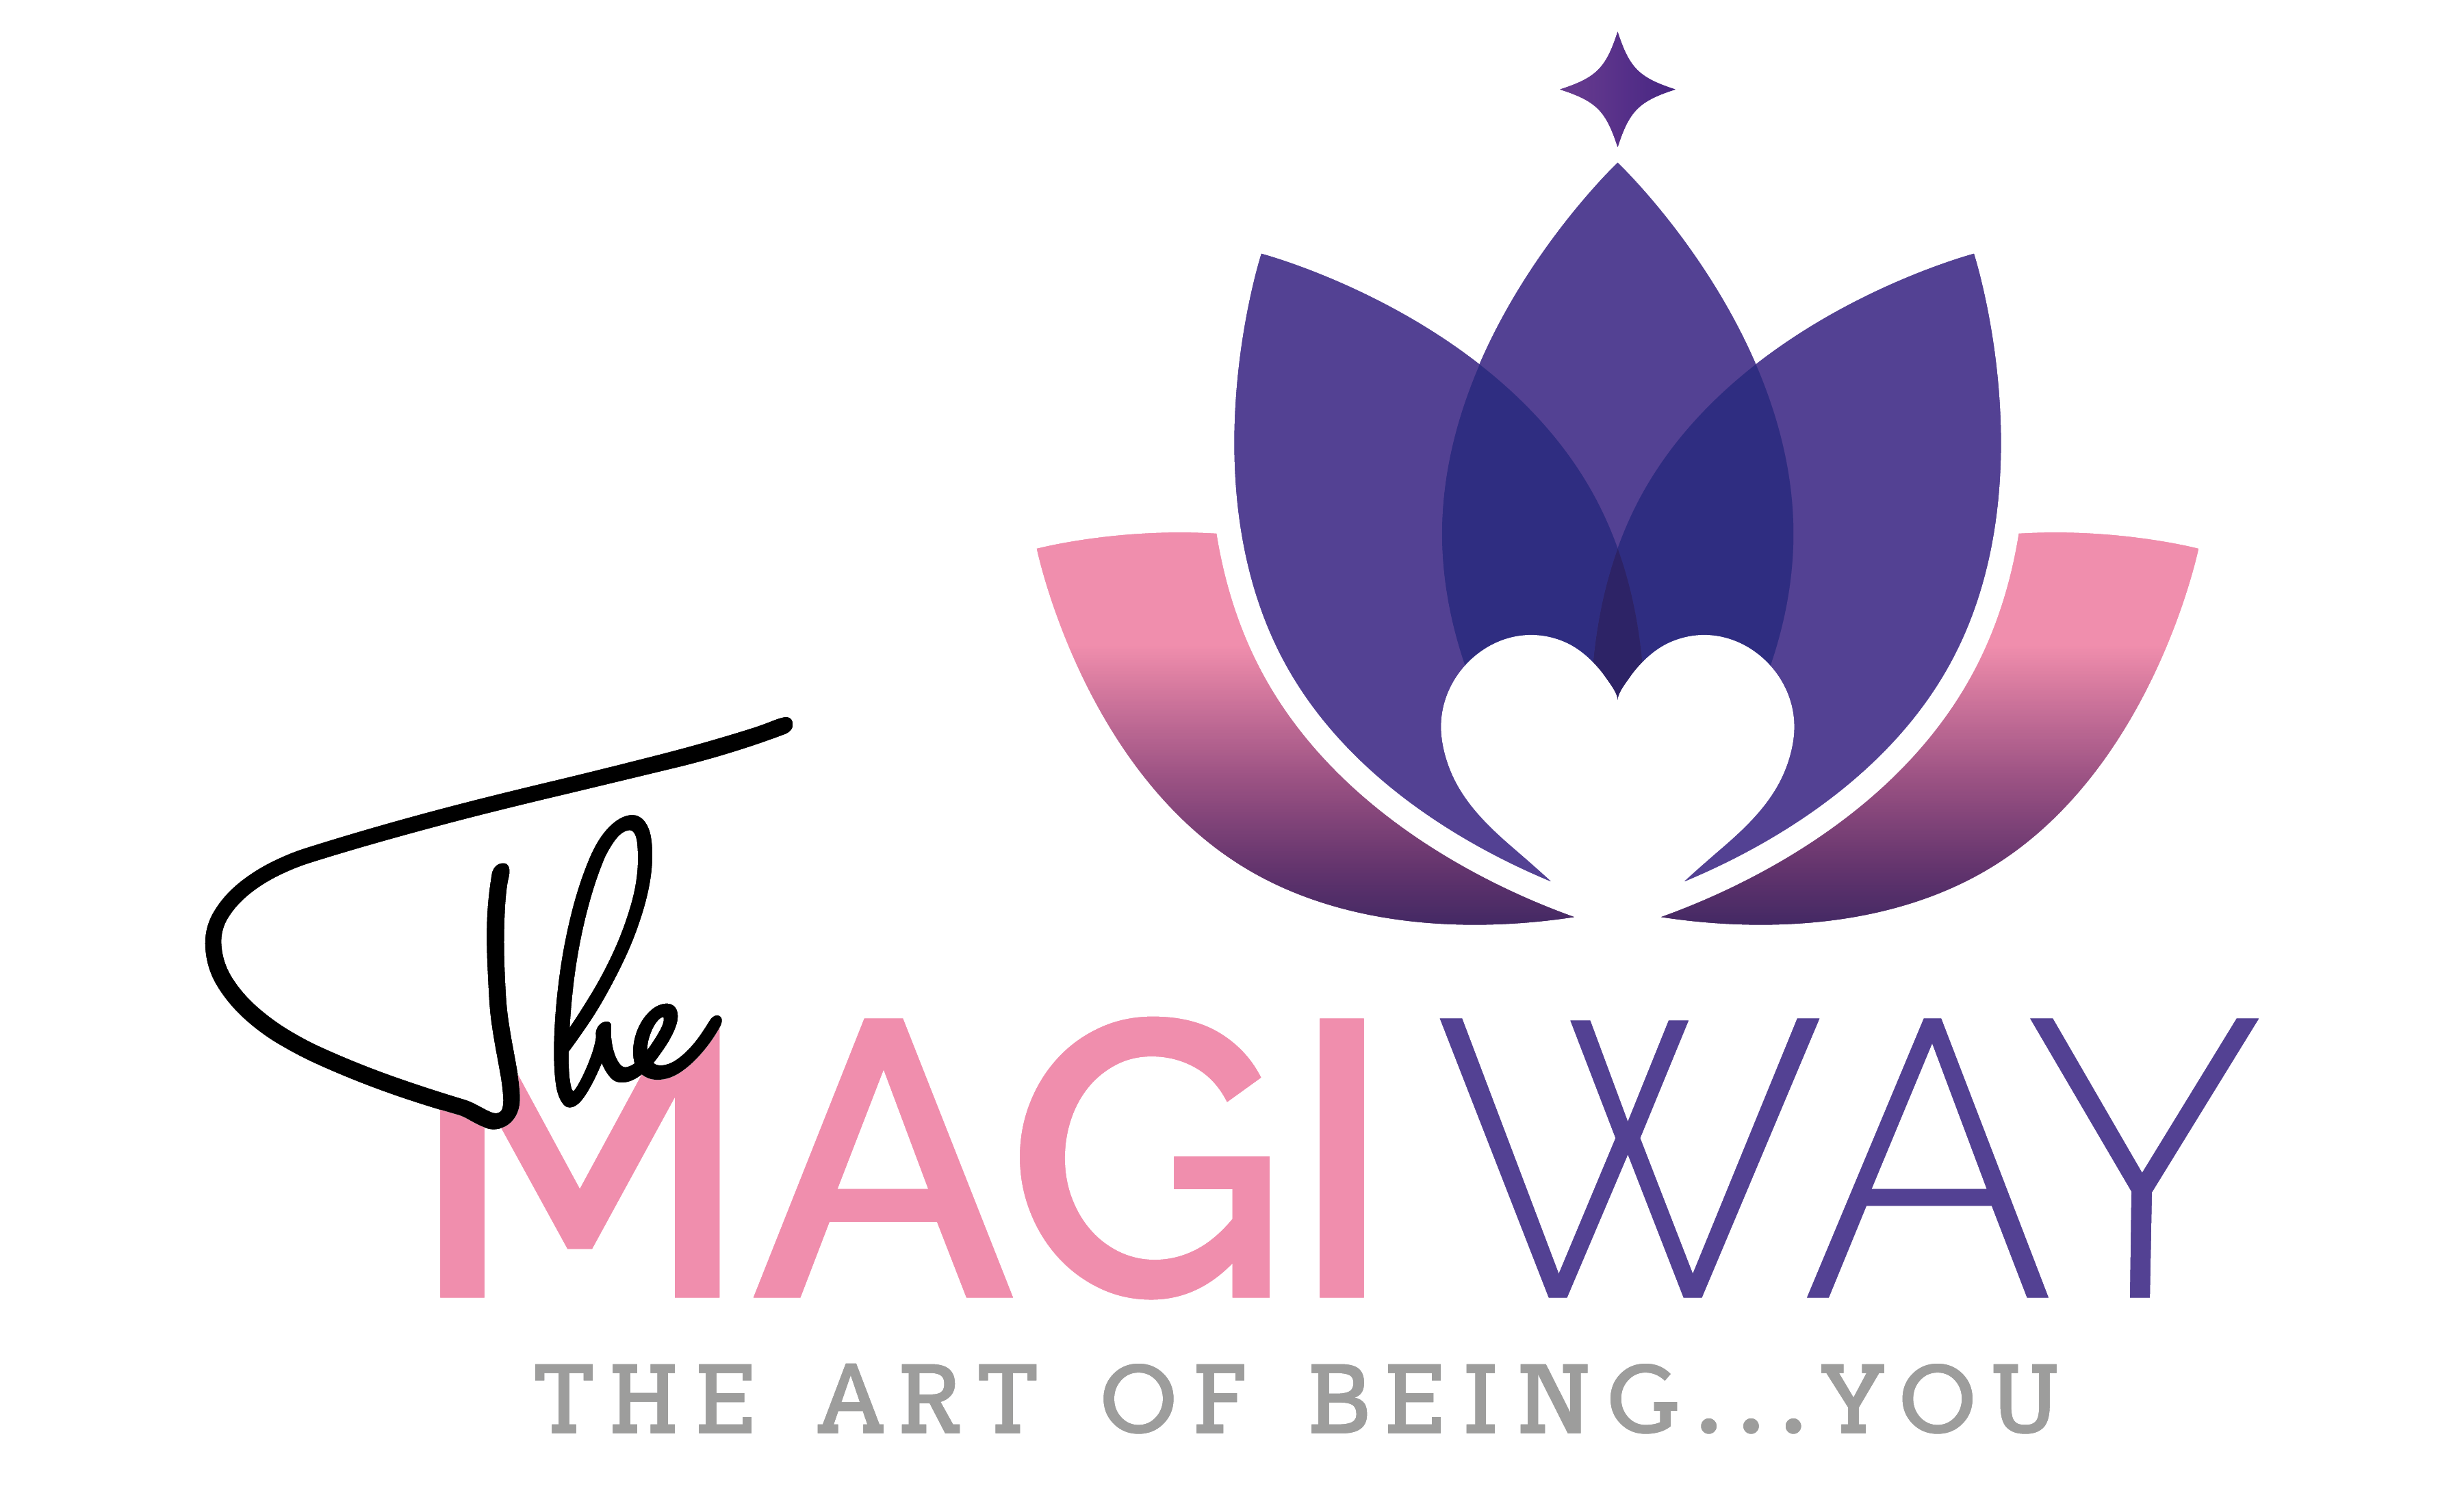 The Magi Way – The Art of Being…You